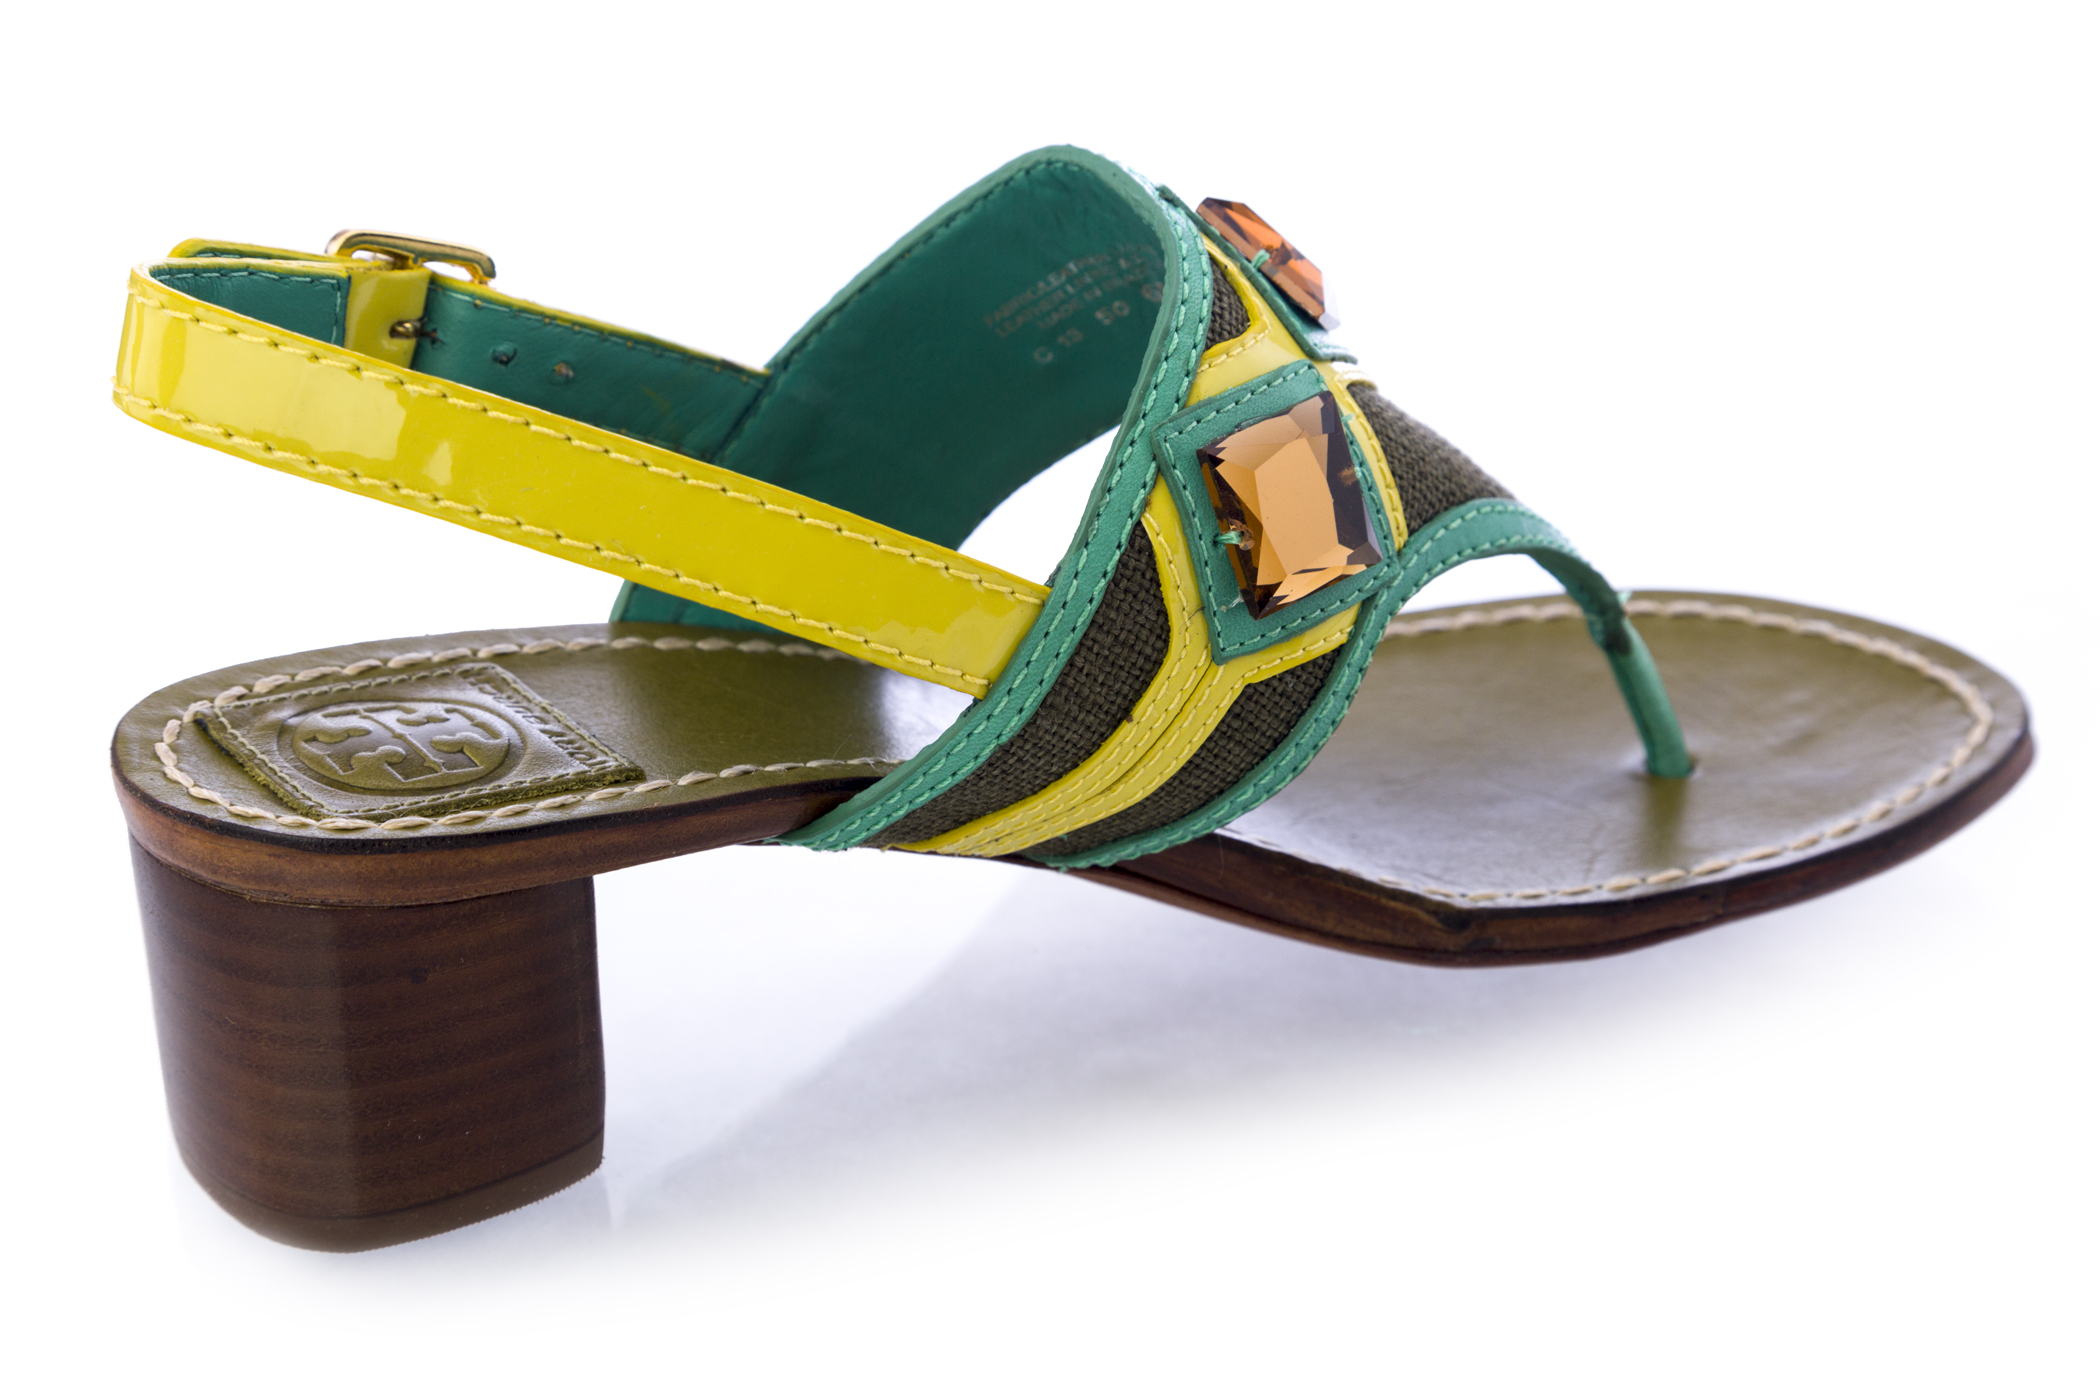 Tory Burch Etta Thong Sandals Economical, stylish, and eye-catching shoes